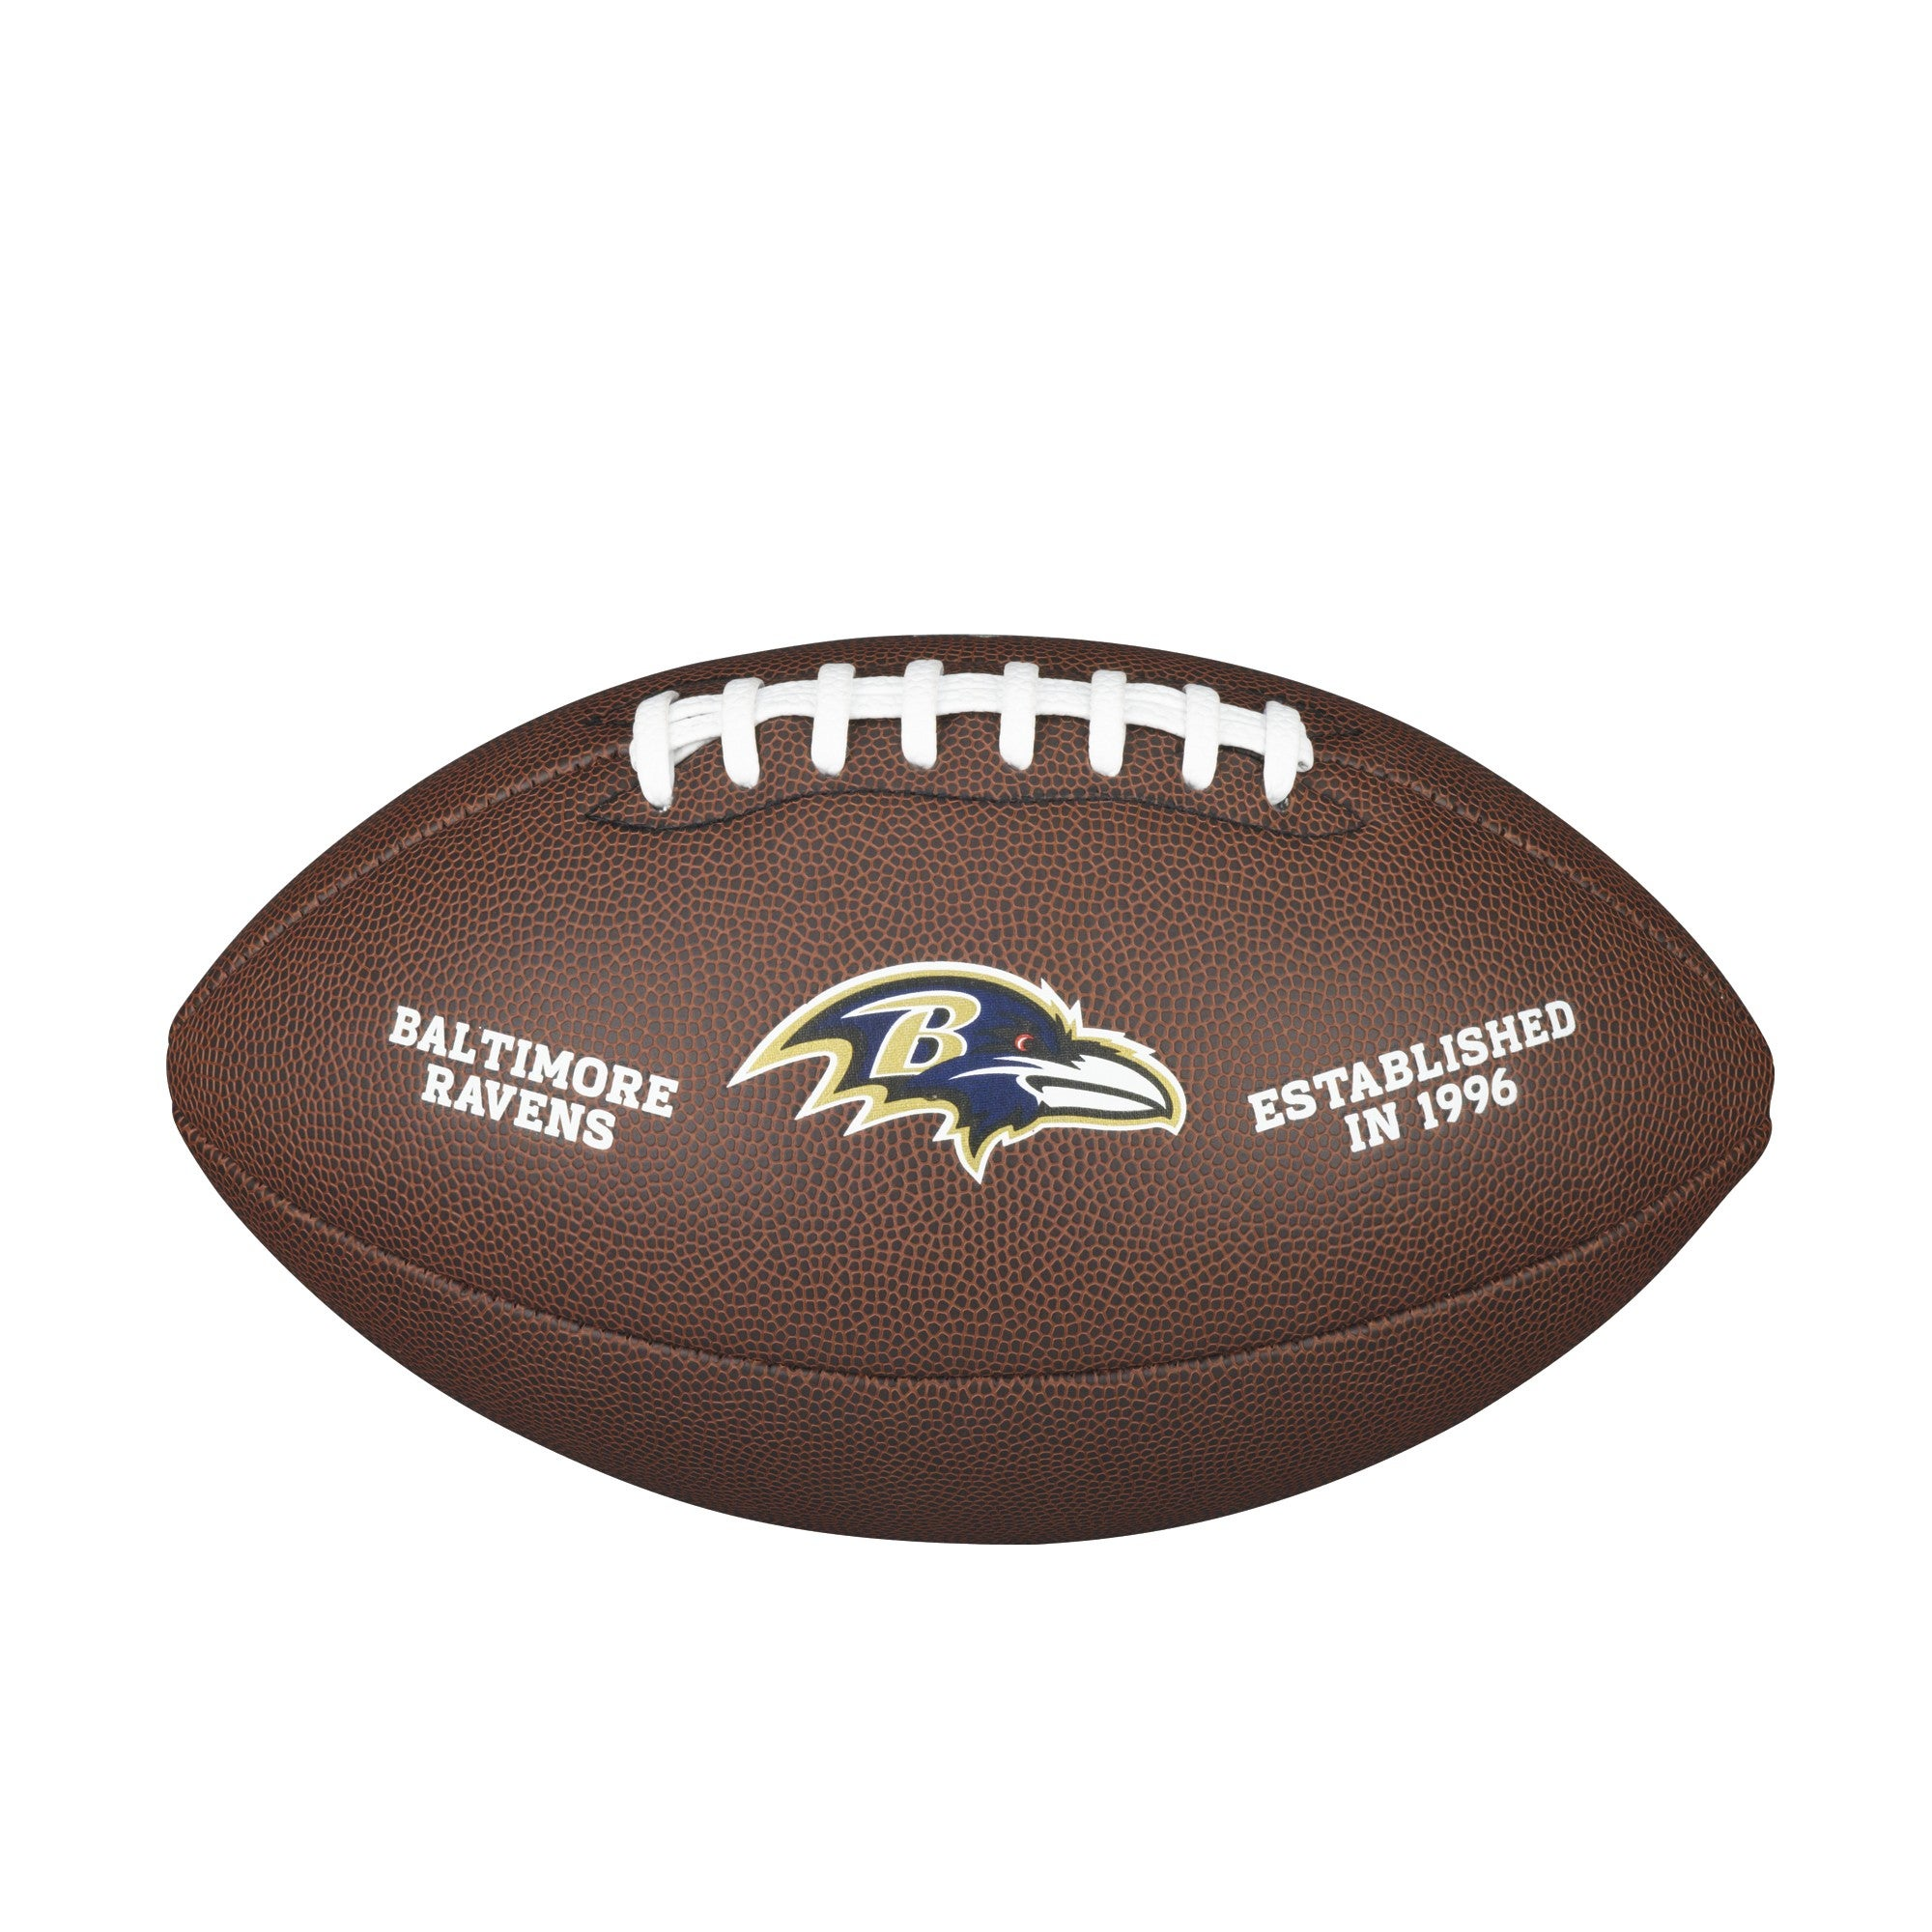 NFL TEAM LOGO COMPOSITE FOOTBALL - OFFICIAL, BALTIMORE RAVENS